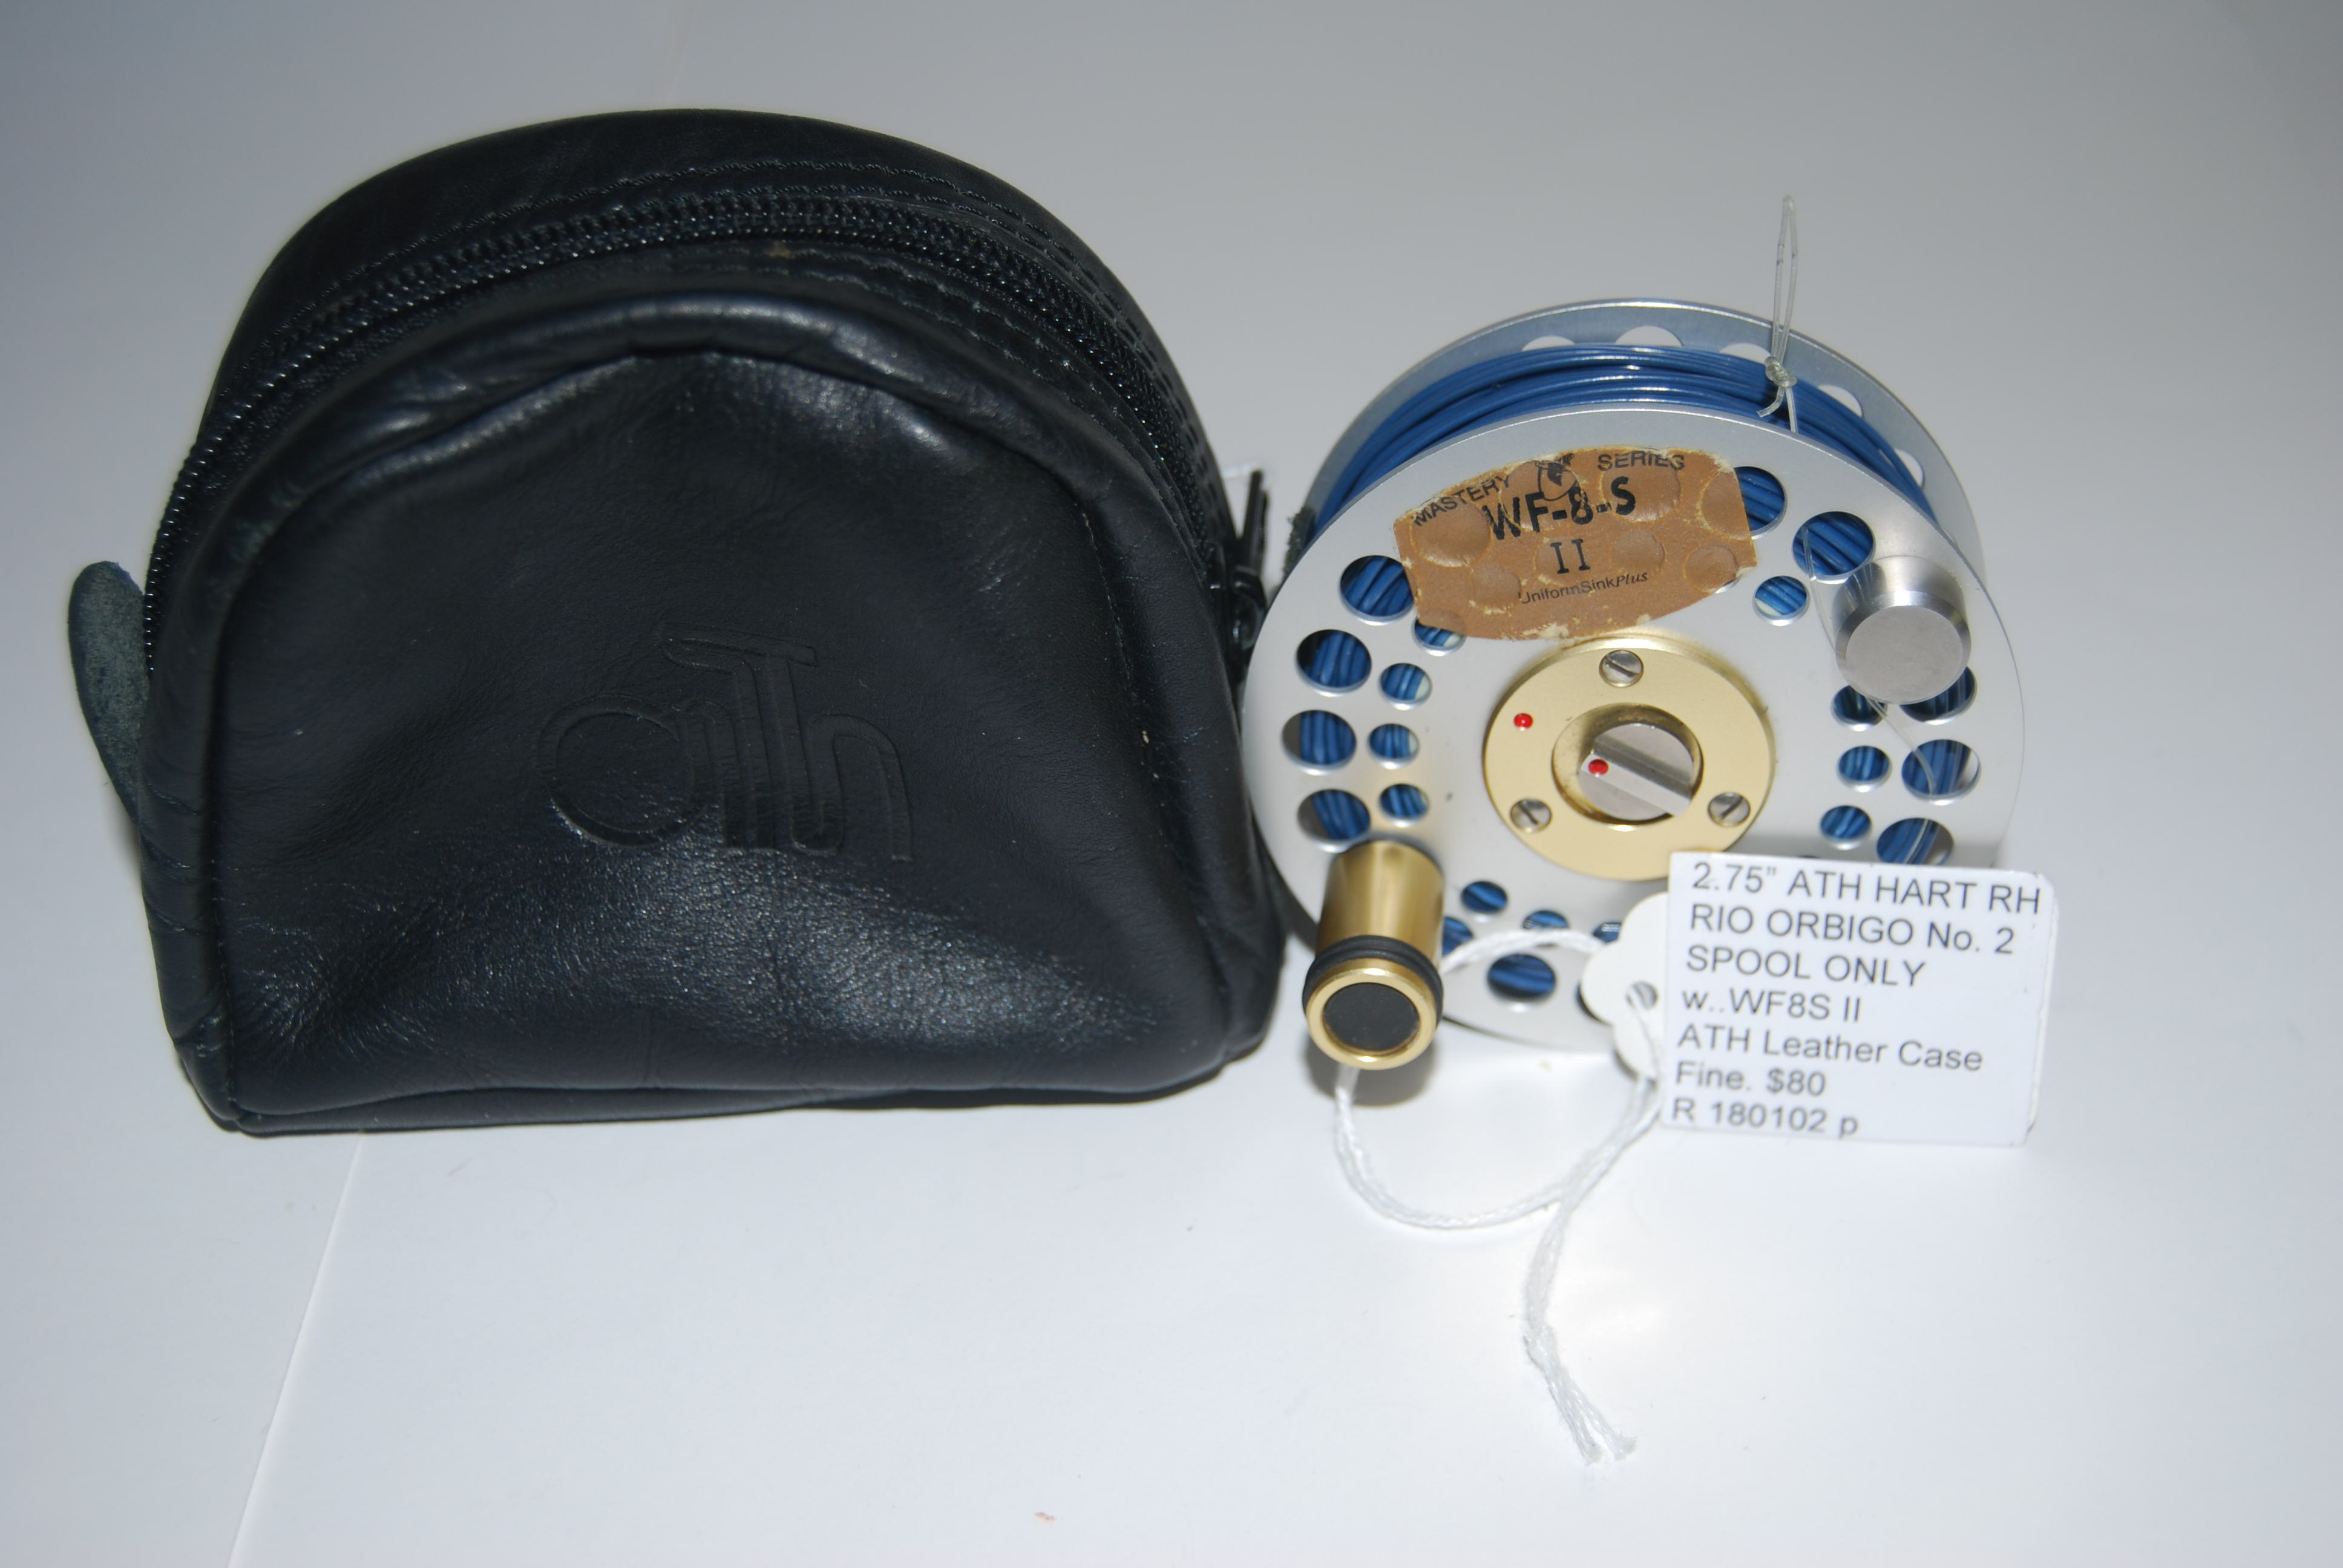 "Image for  2.75"" ARI T HART RIO ORBIGO No. 2. EXTRA SPOOL ONLY. In ATH Leather Case."